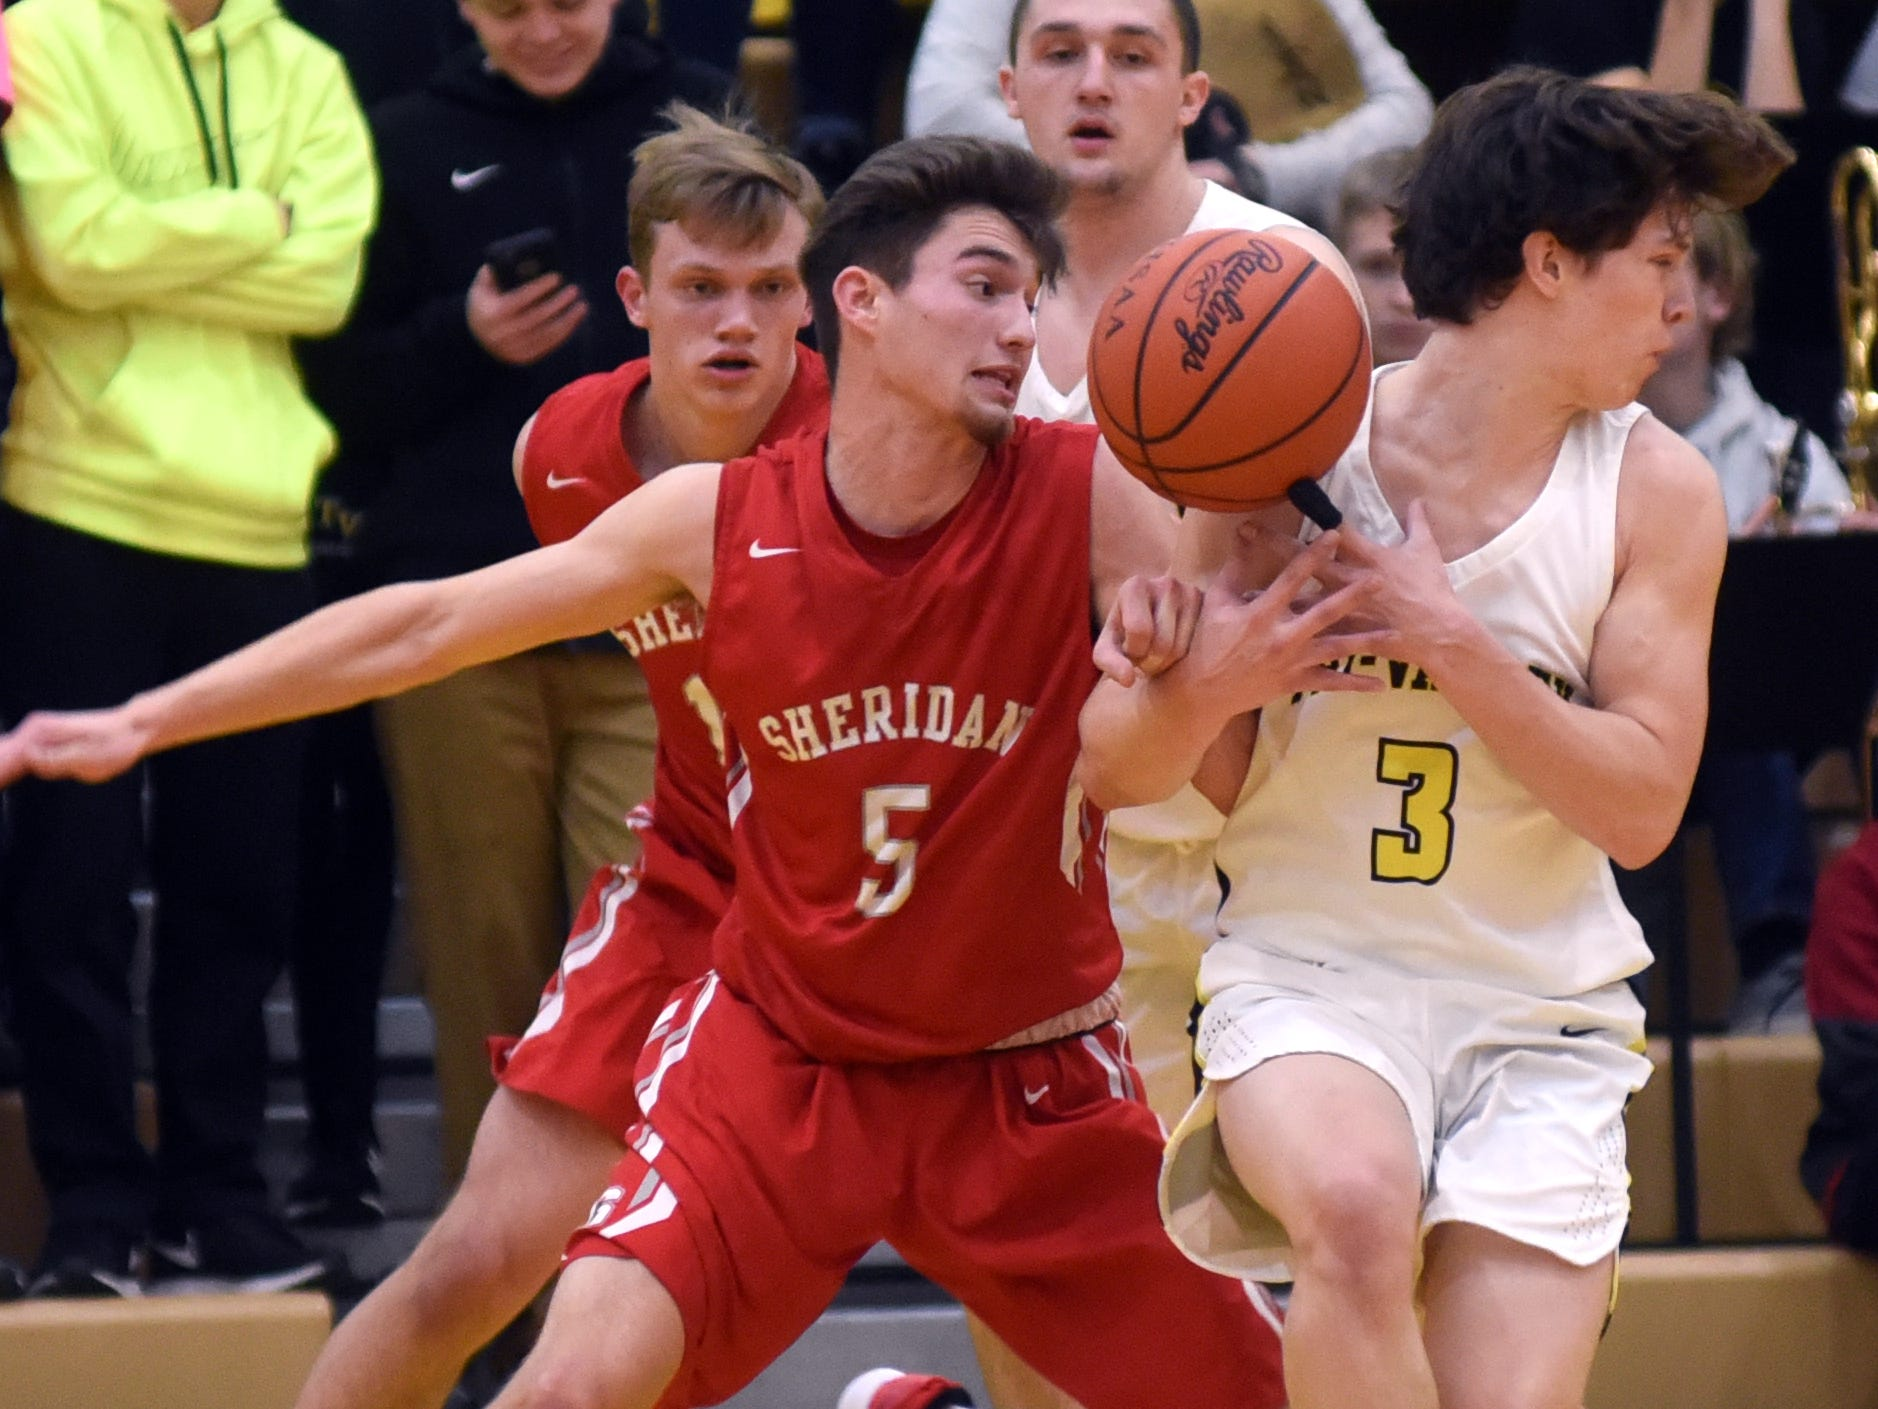 Sheridan's Costa Coconis, left, and Tri-Valley's Matt King get tangled up going for a loose ball on Friday night in Dresden.